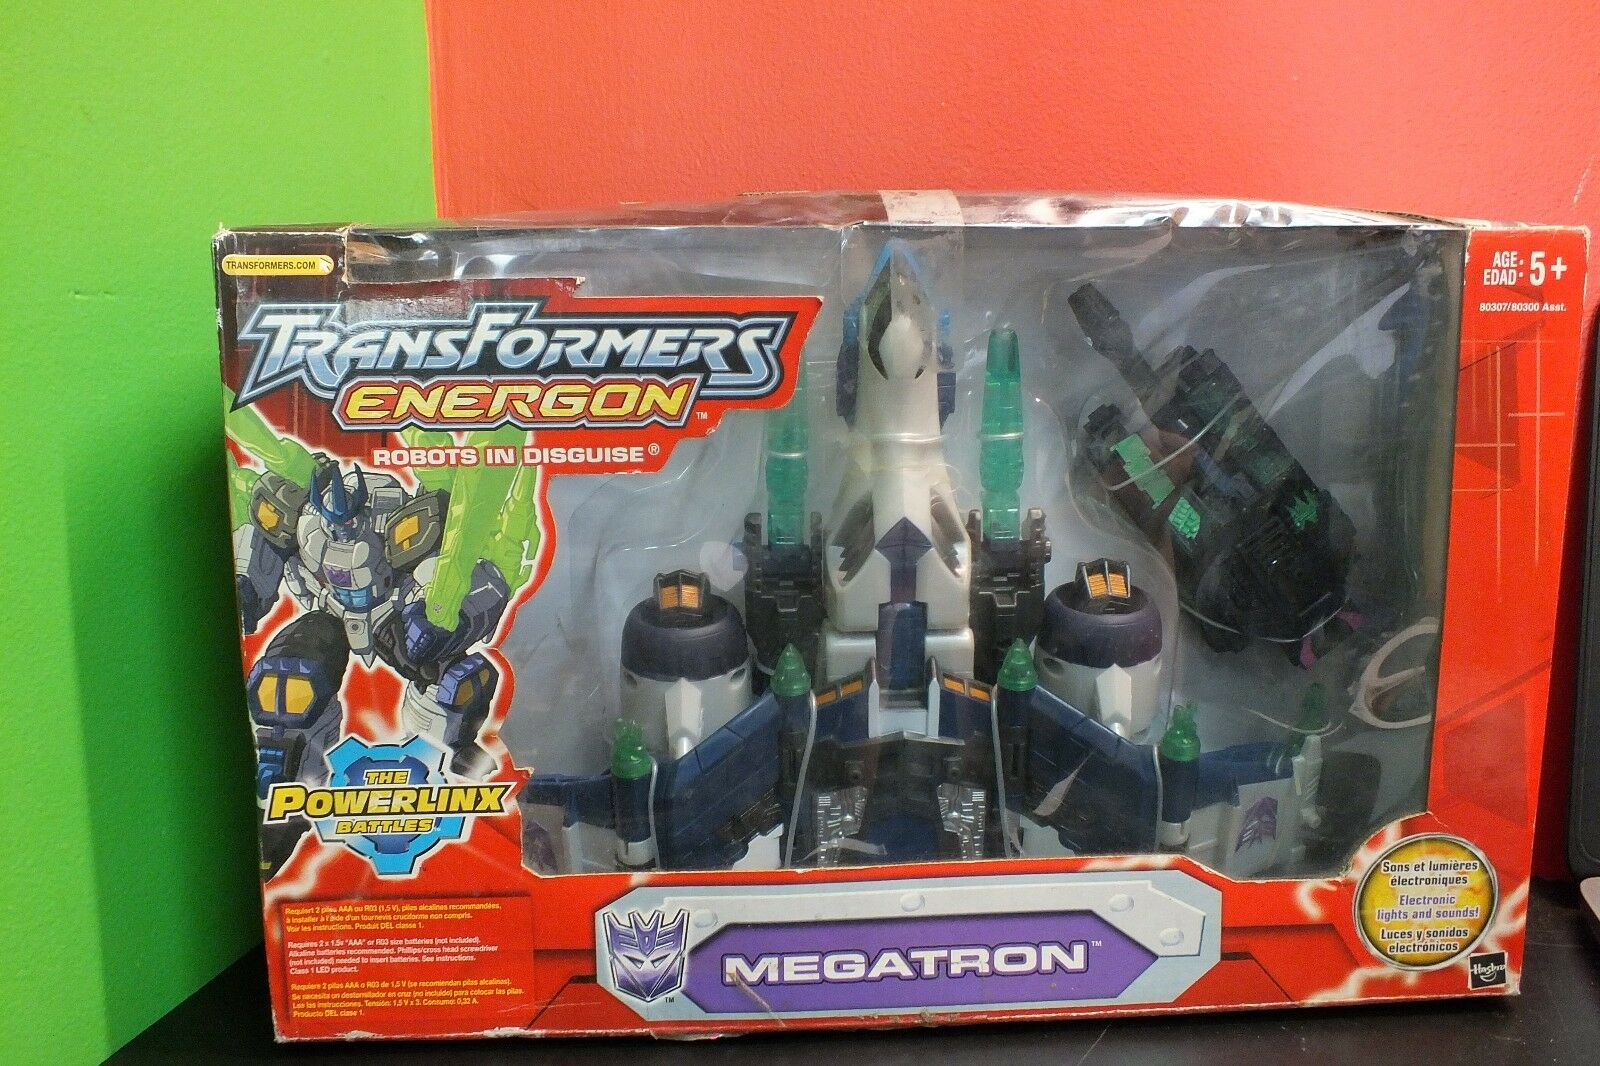 Megatron Energon Transformers Super Class Hasbro 2004 MISP  With Tank Powerlinx